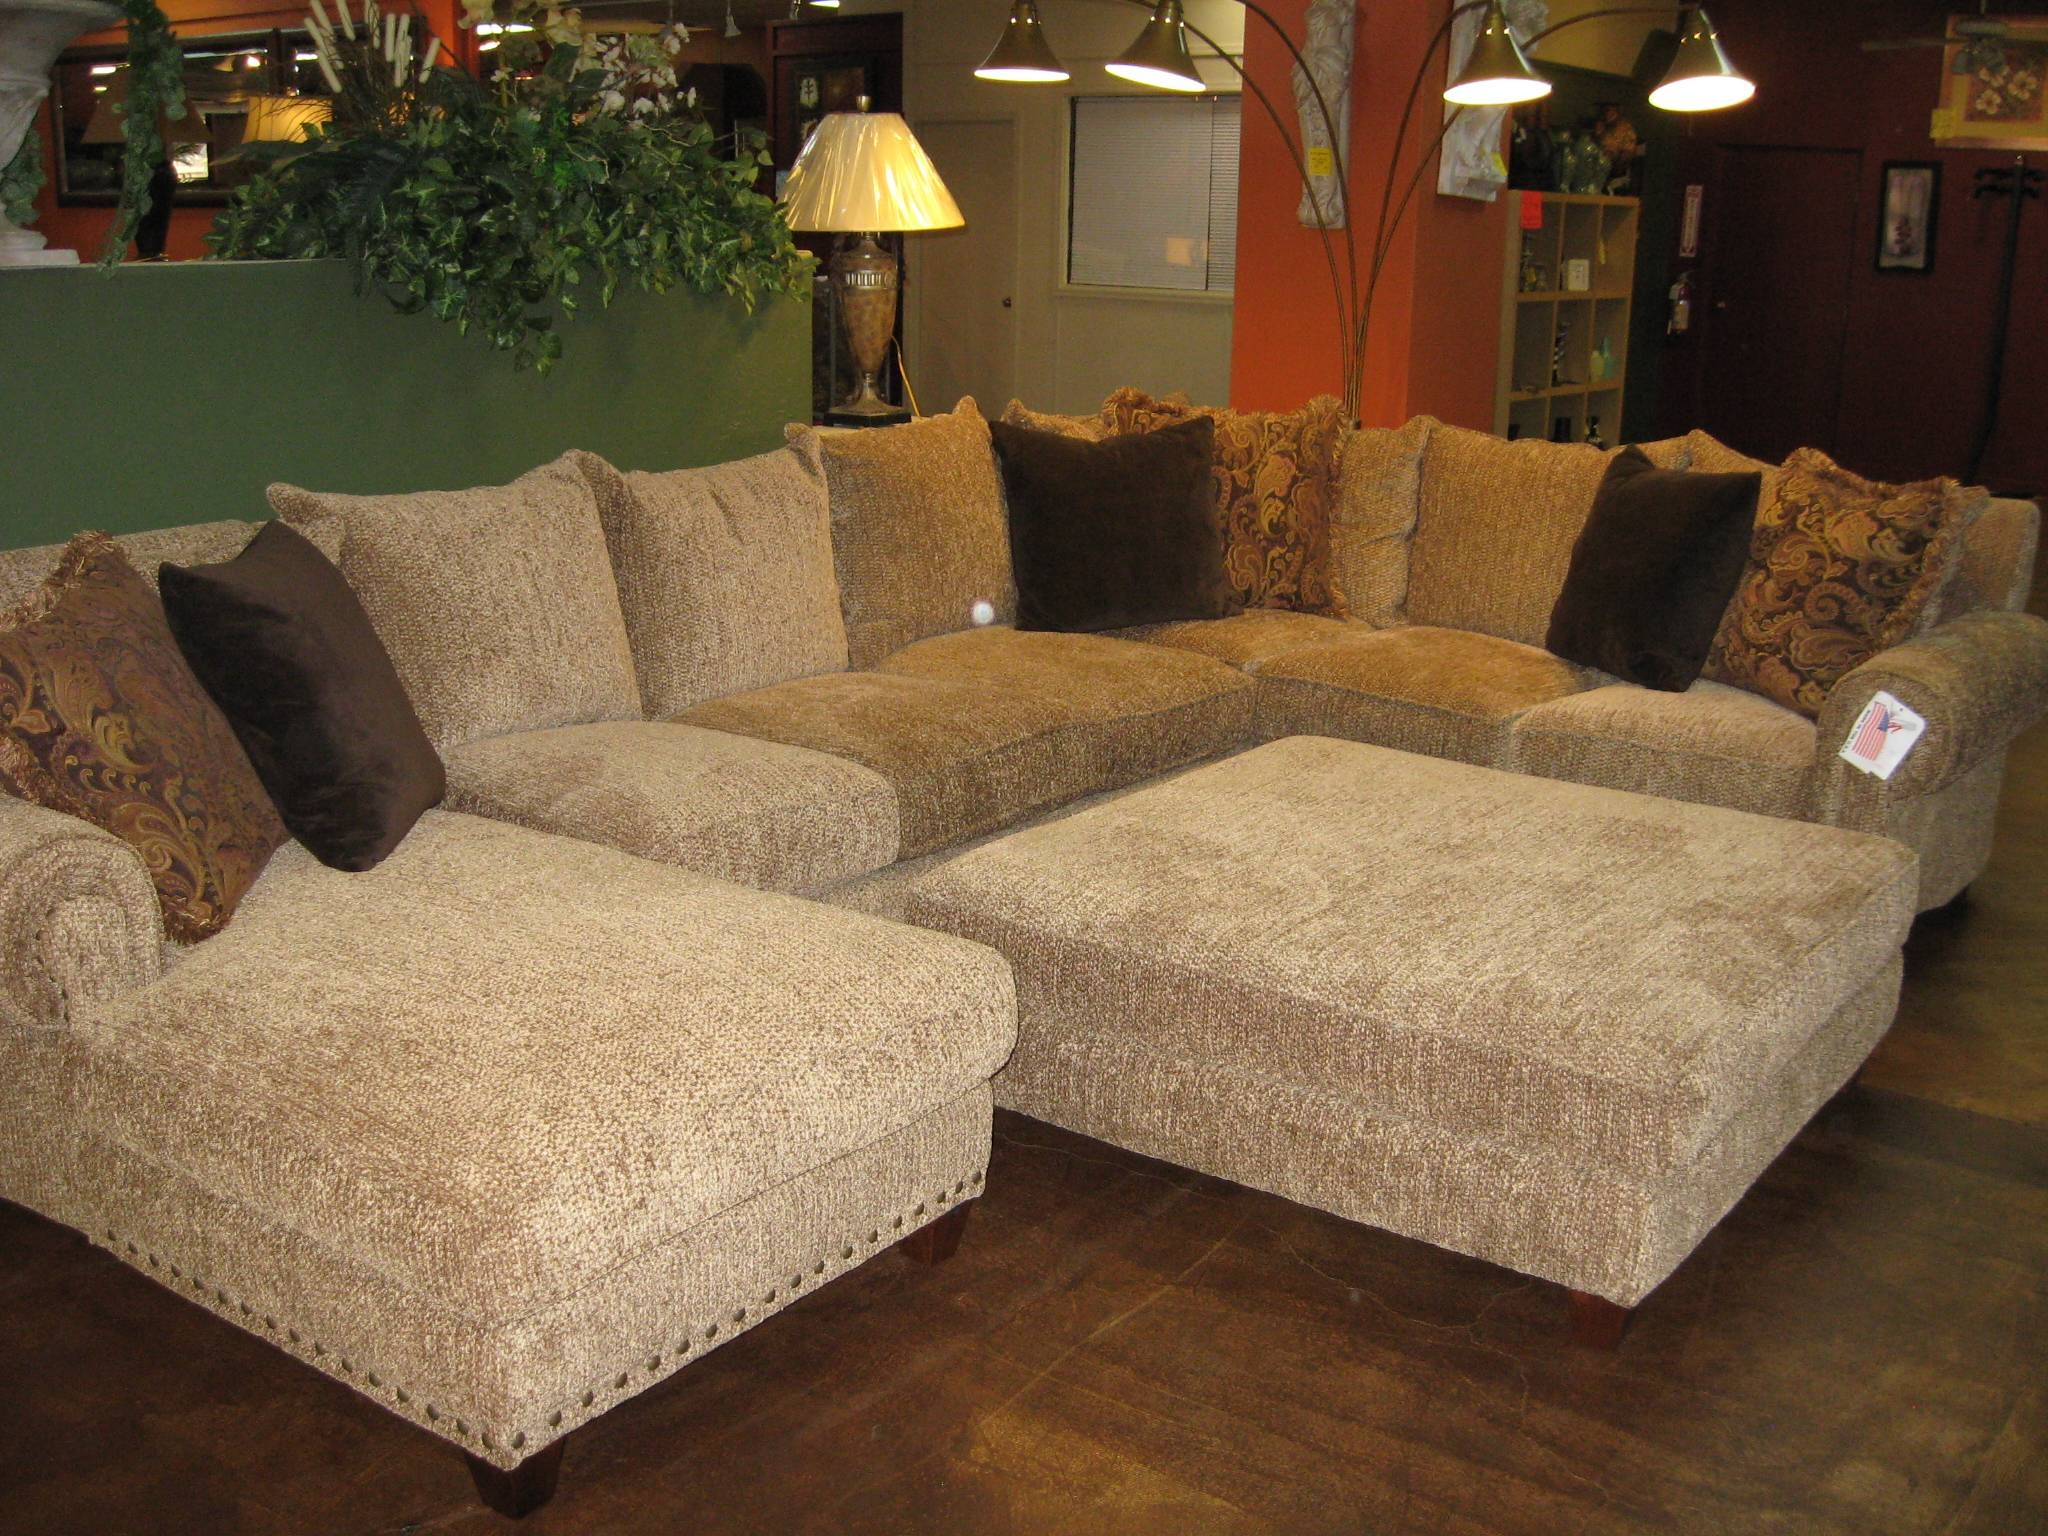 Furniture: Robert Michaels Furniture | Robert Michaels Sofa | Down with regard to Down Filled Sectional Sofas (Image 11 of 30)